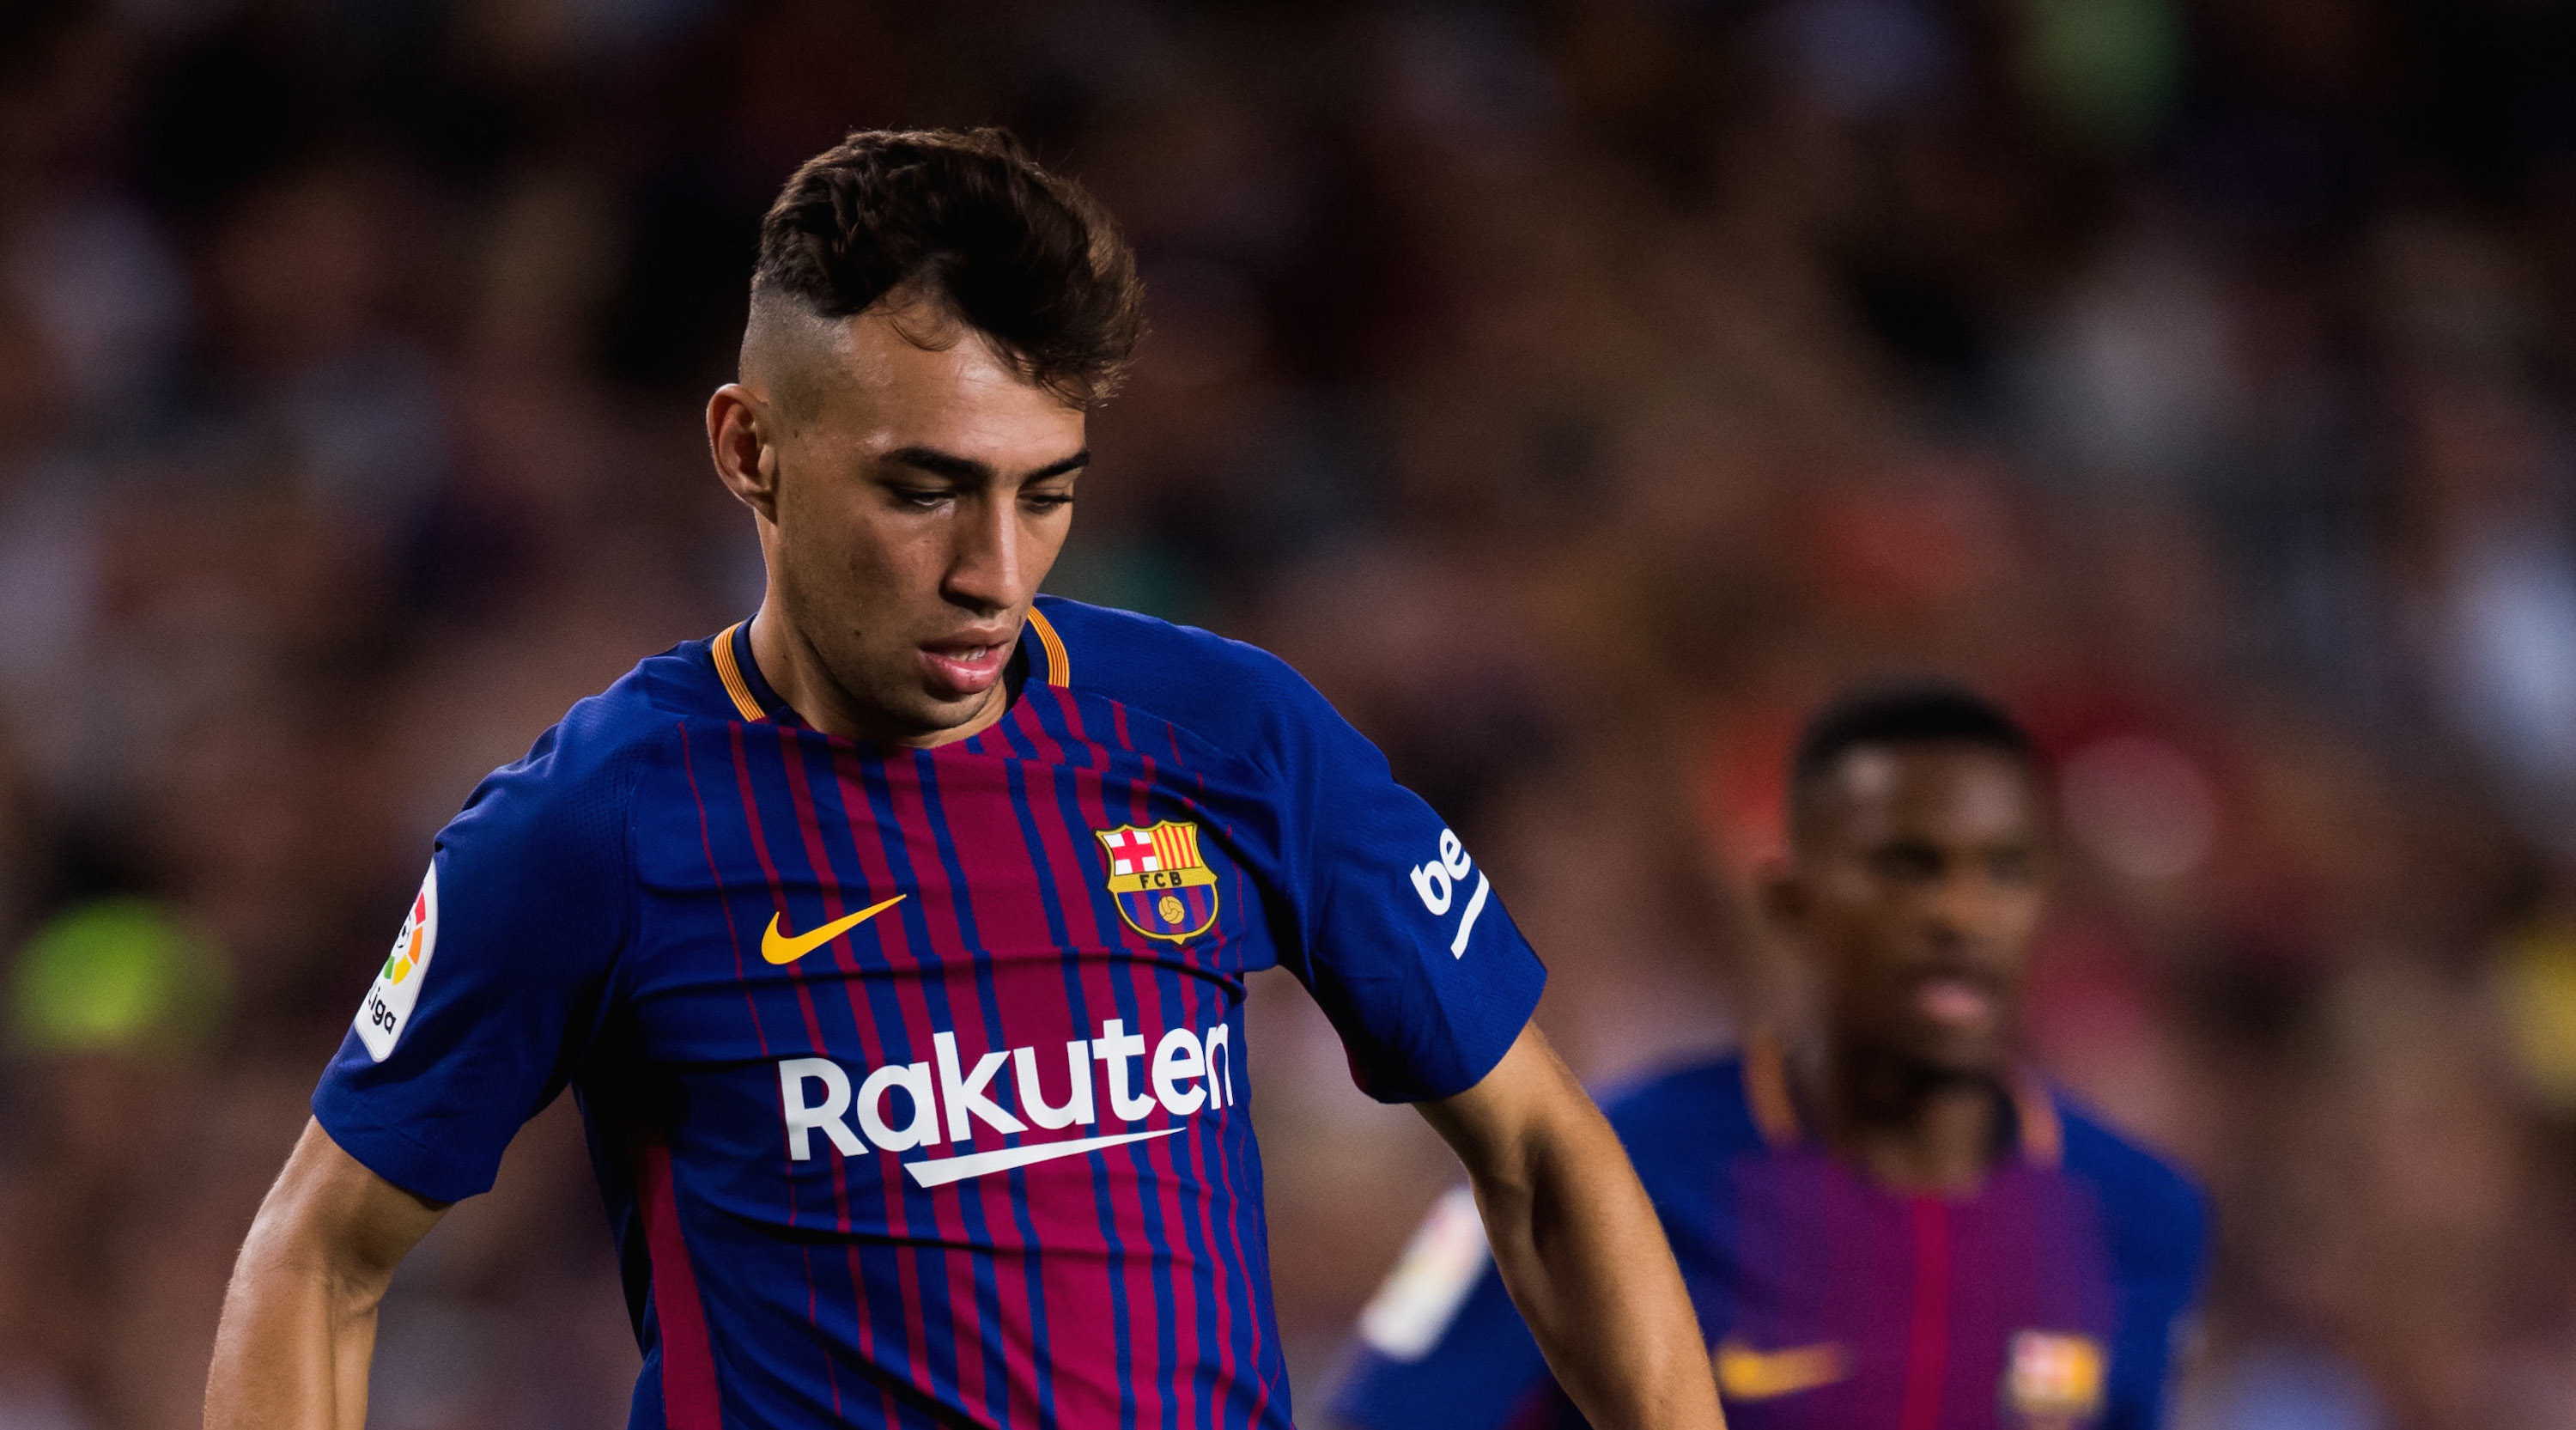 BARCELONA, SPAIN - AUGUST 07: Munir El Haddadi of FC Barcelona conducts the ball during the Joan Gamper Trophy match between FC Barcelona and Chapecoense at Camp Nou stadium on August 7, 2017 in Barcelona, Spain. (Photo by Alex Caparros/Getty Images)